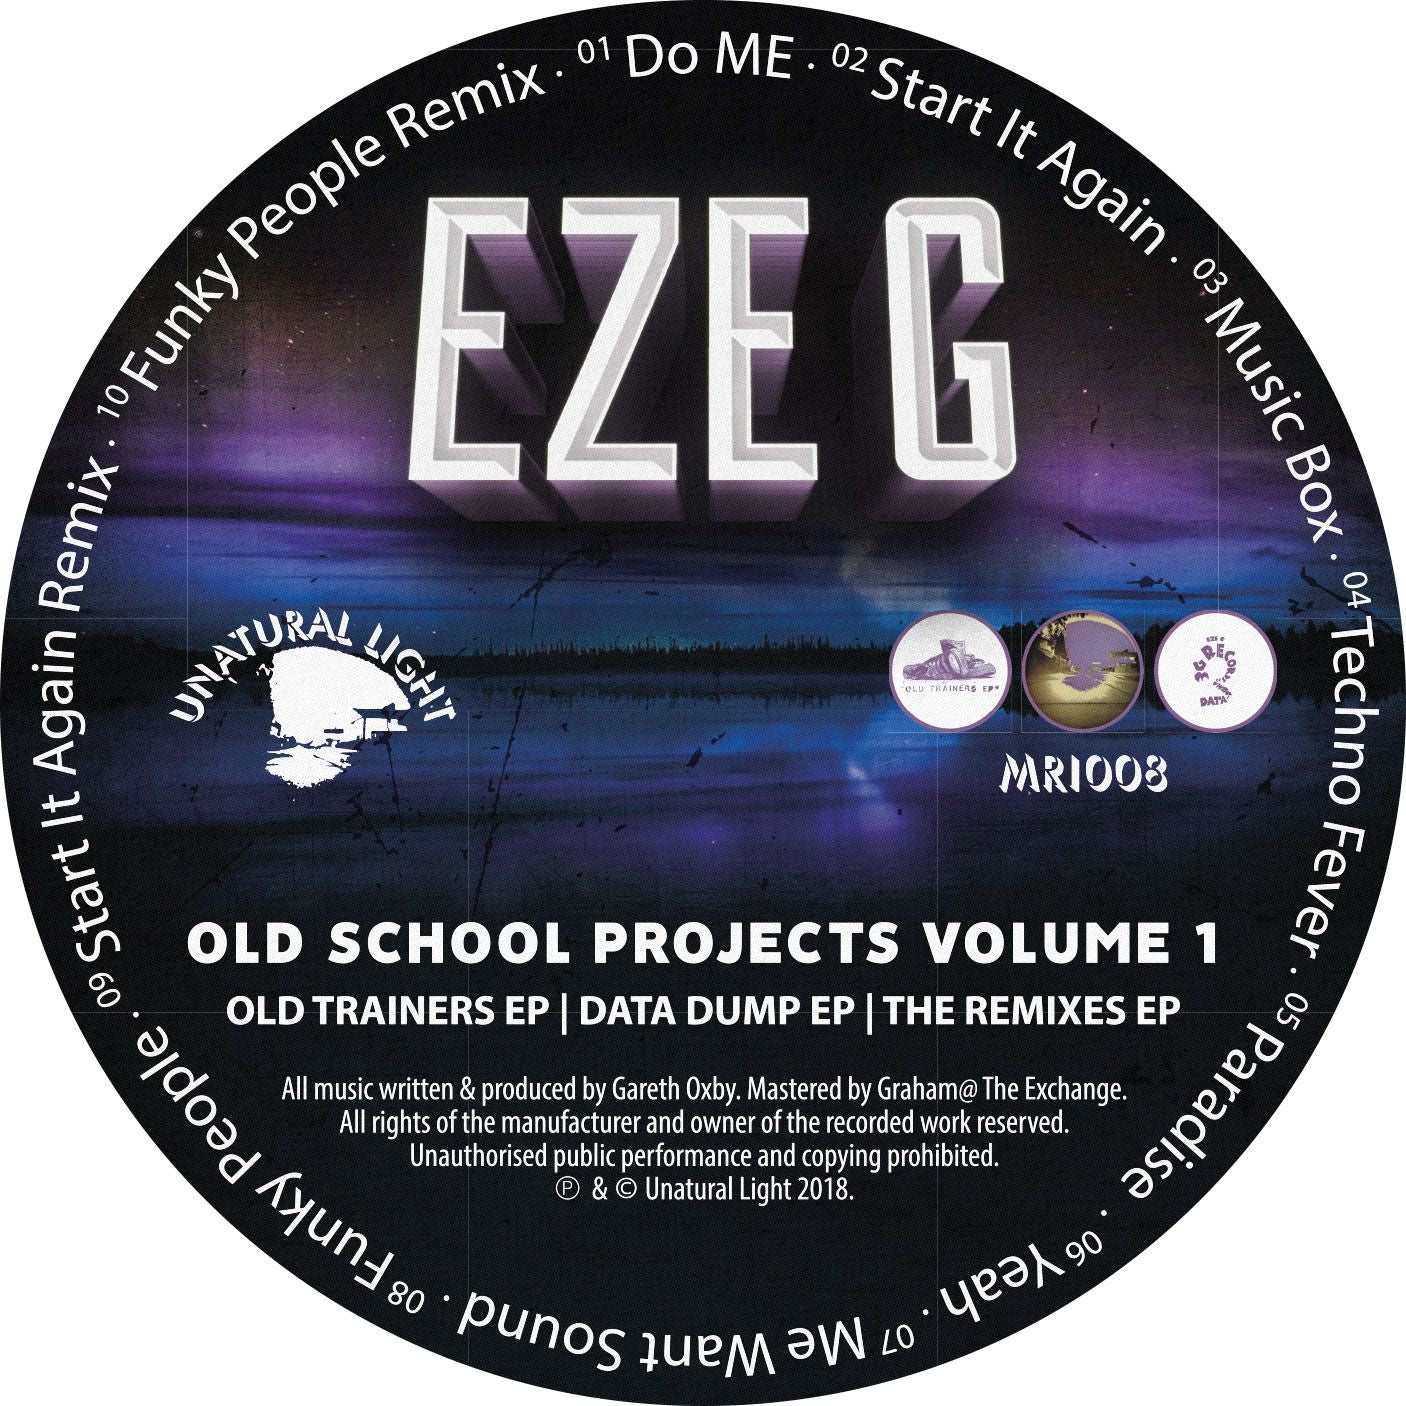 Eze G - Old School Projects Volume 1 [CD]